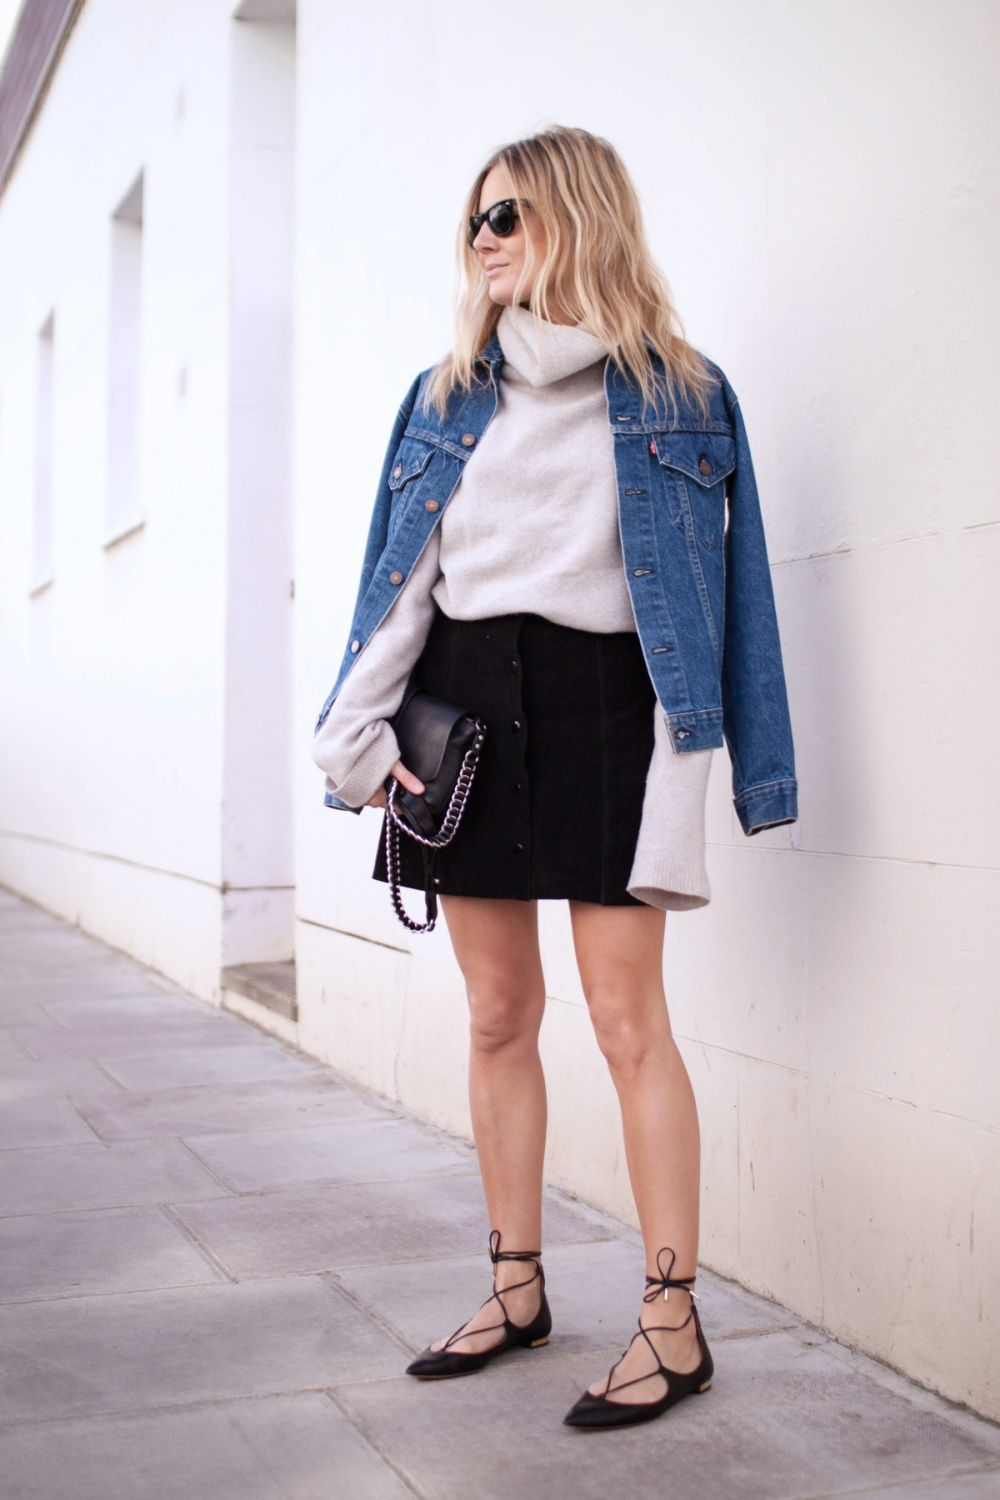 GET THE LOOK: BUTTON DOWN SKIRTS